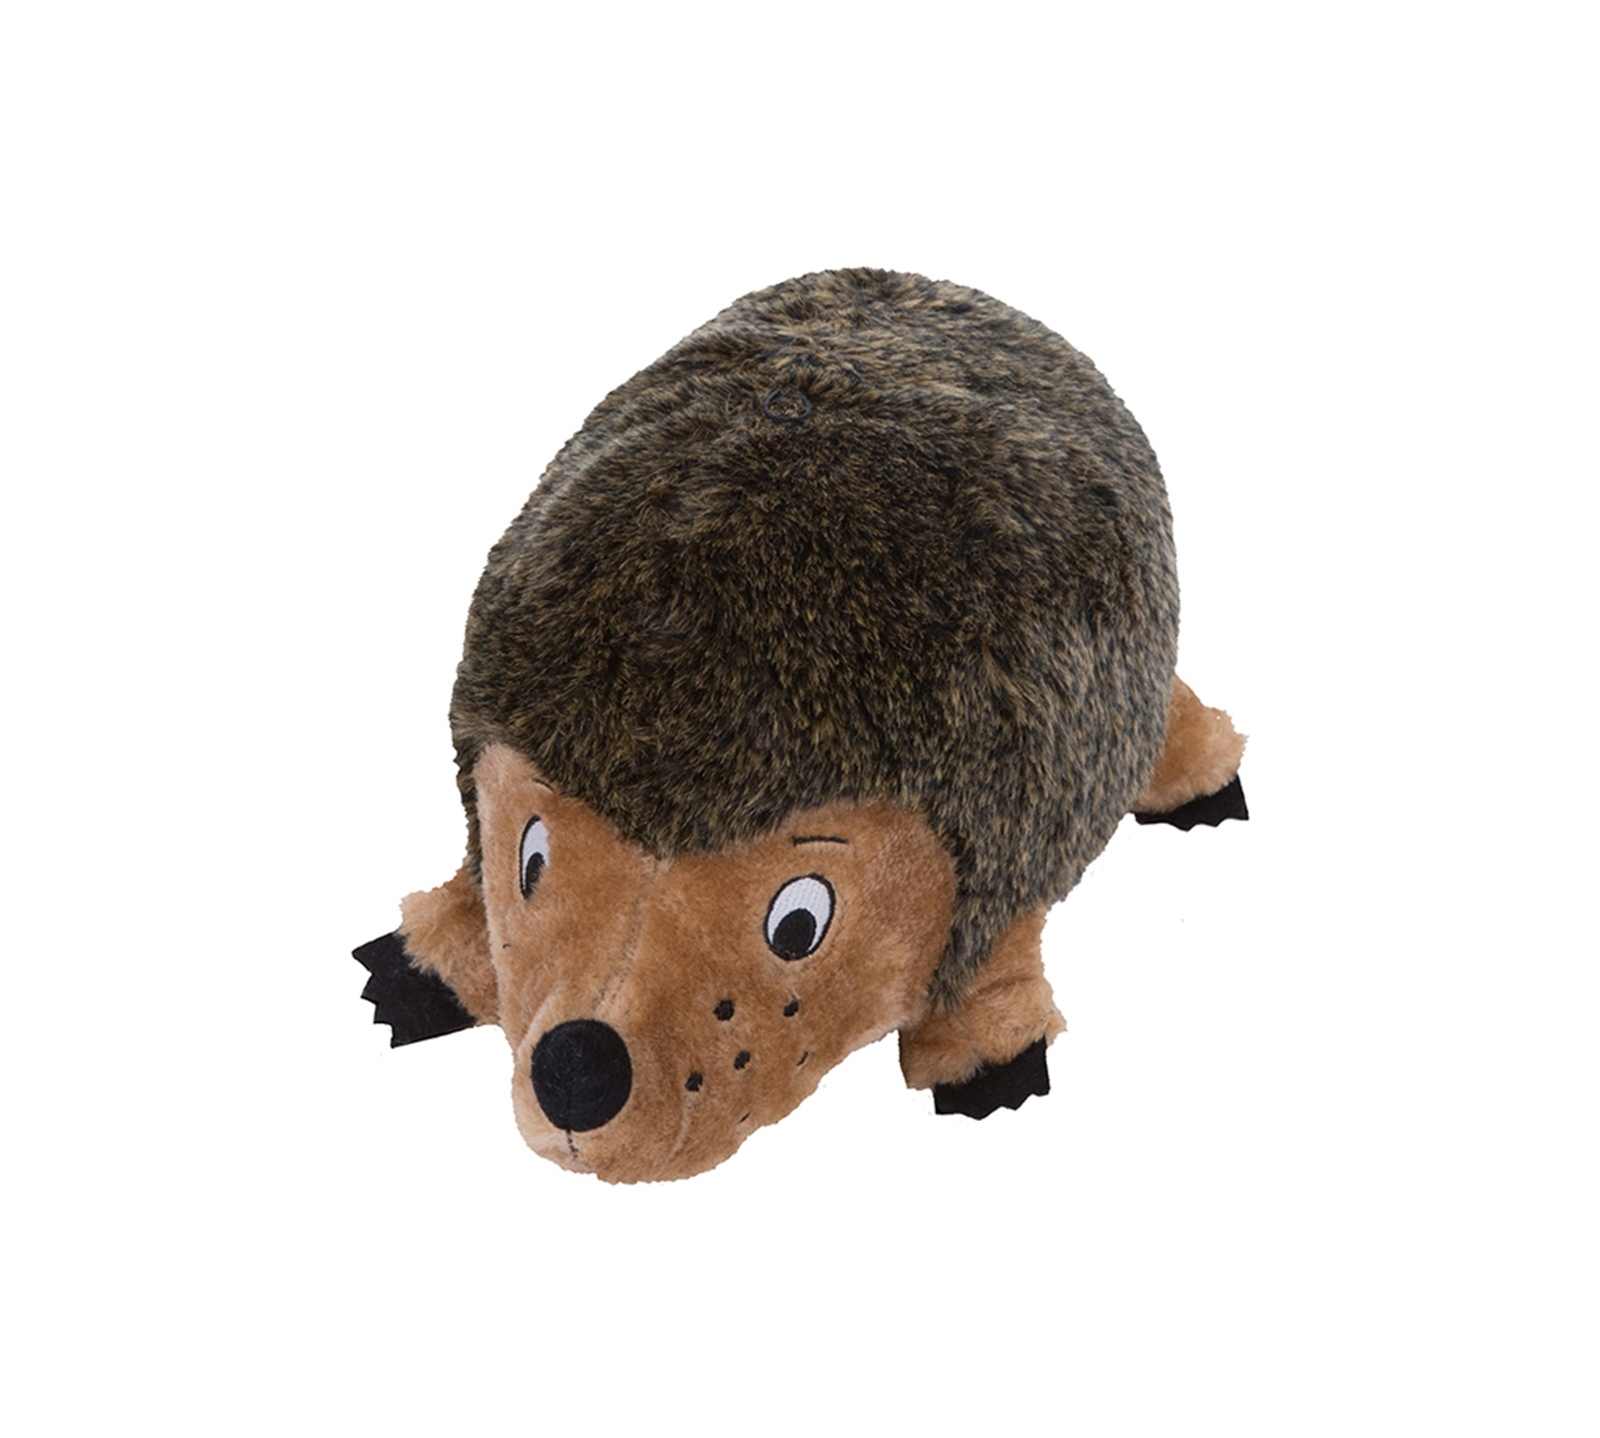 Outward Hound Hedgehog Plush Squeaker Dog Toy - Jumbo 33cm image 0